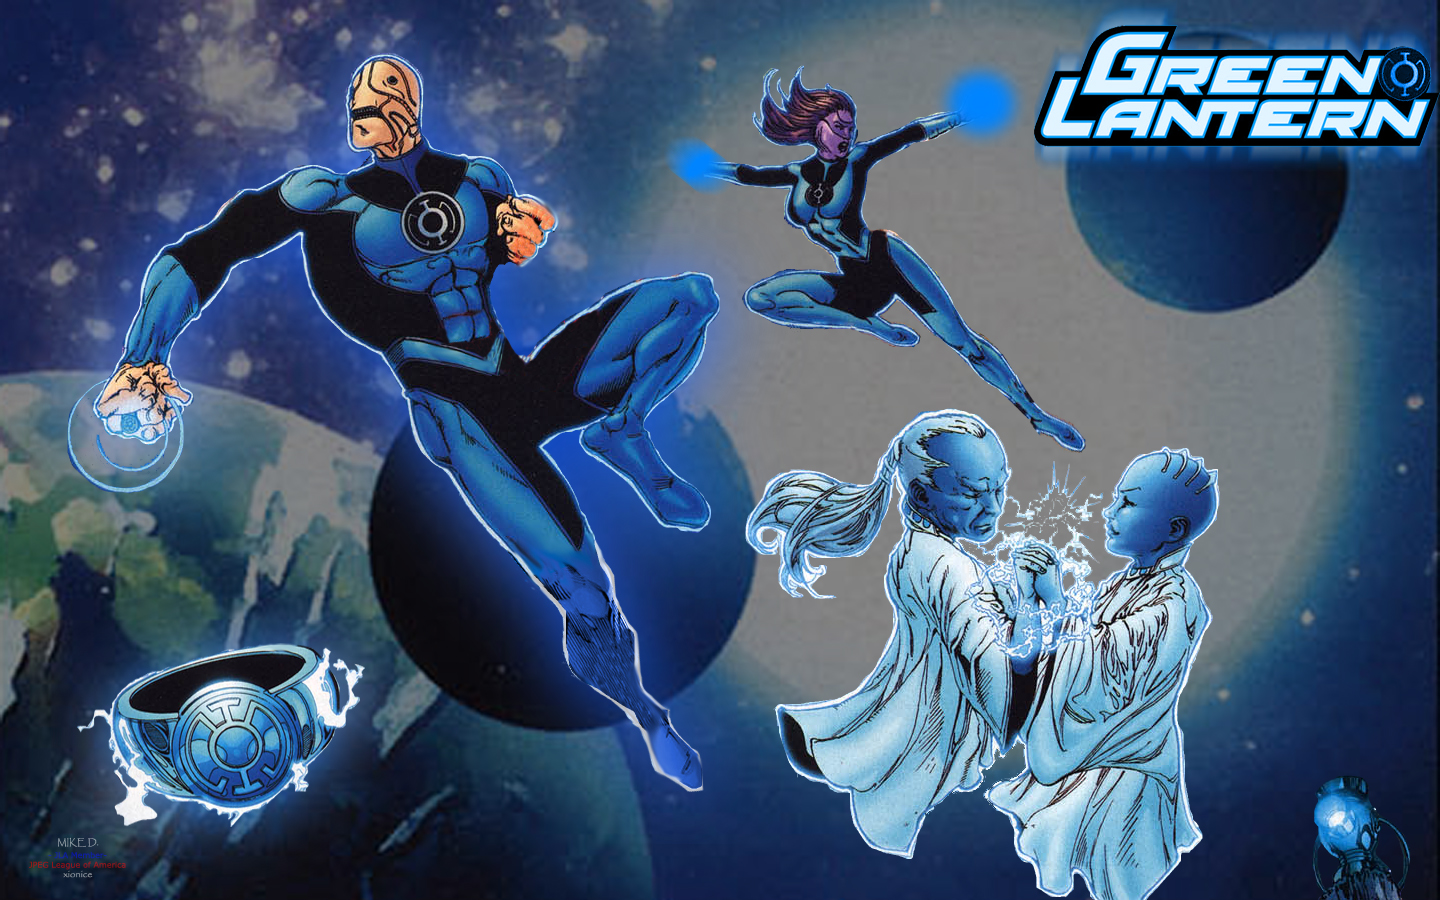 http://www.comixity.fr/wp-content/uploads/2011/04/Blue_Lantern_Corps_by_Xionice.jpg